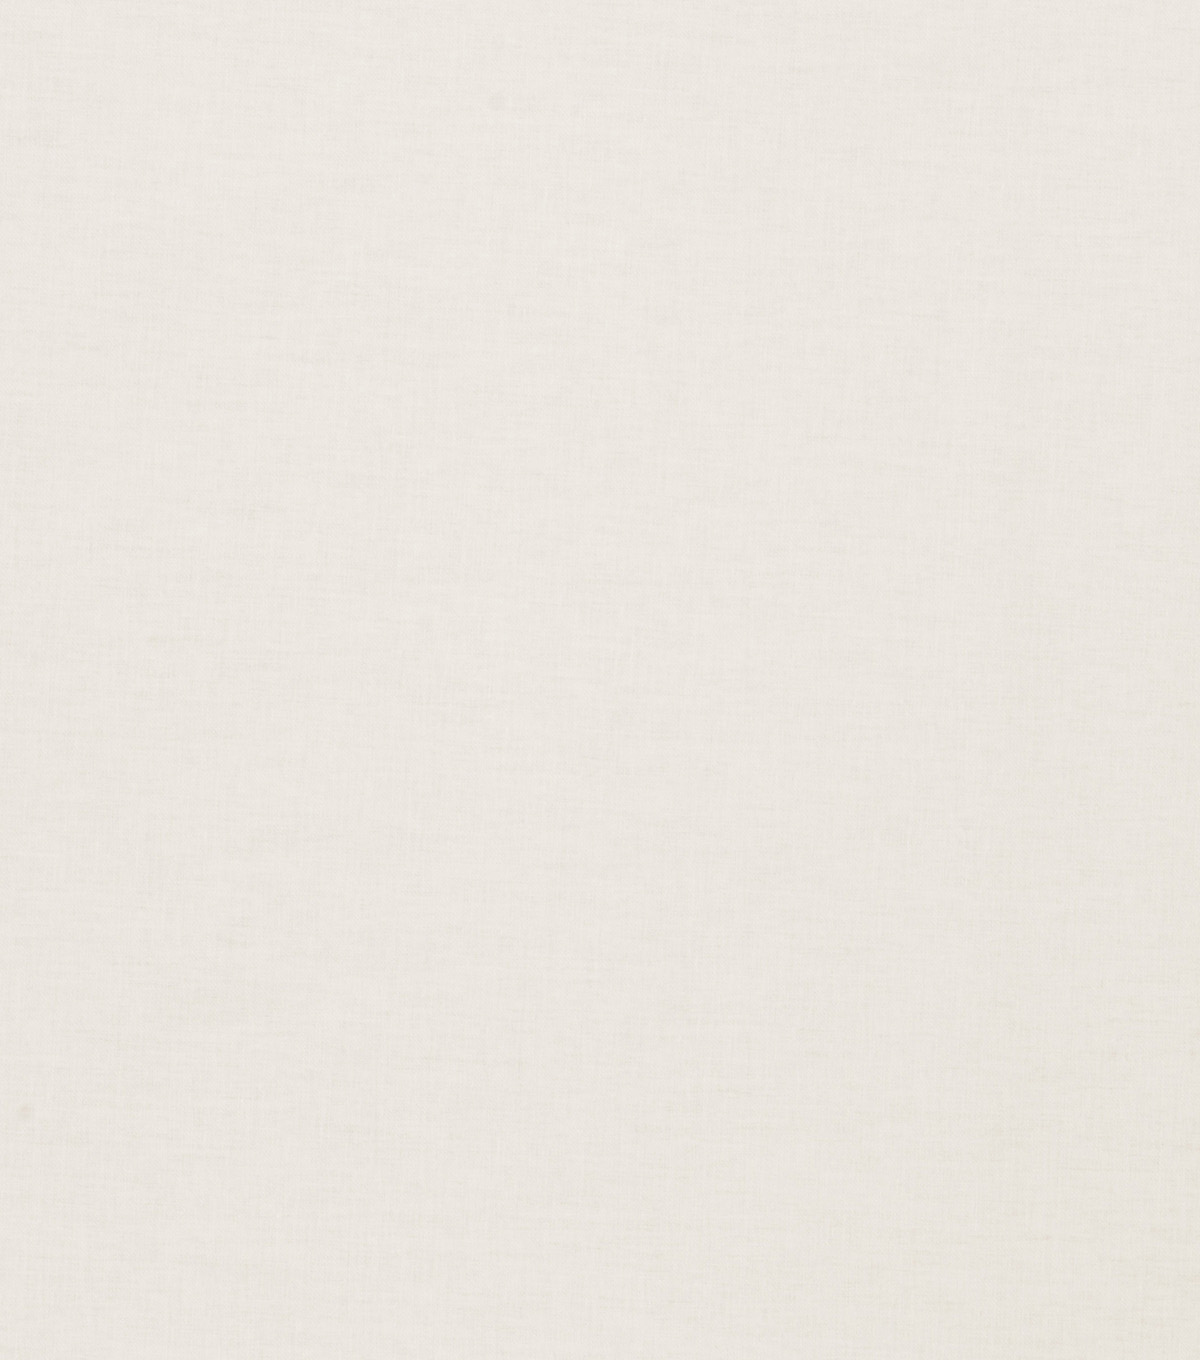 Roc-Lon Marquise Crease-Resistant Lining Fabric 54\u0022-Ivory